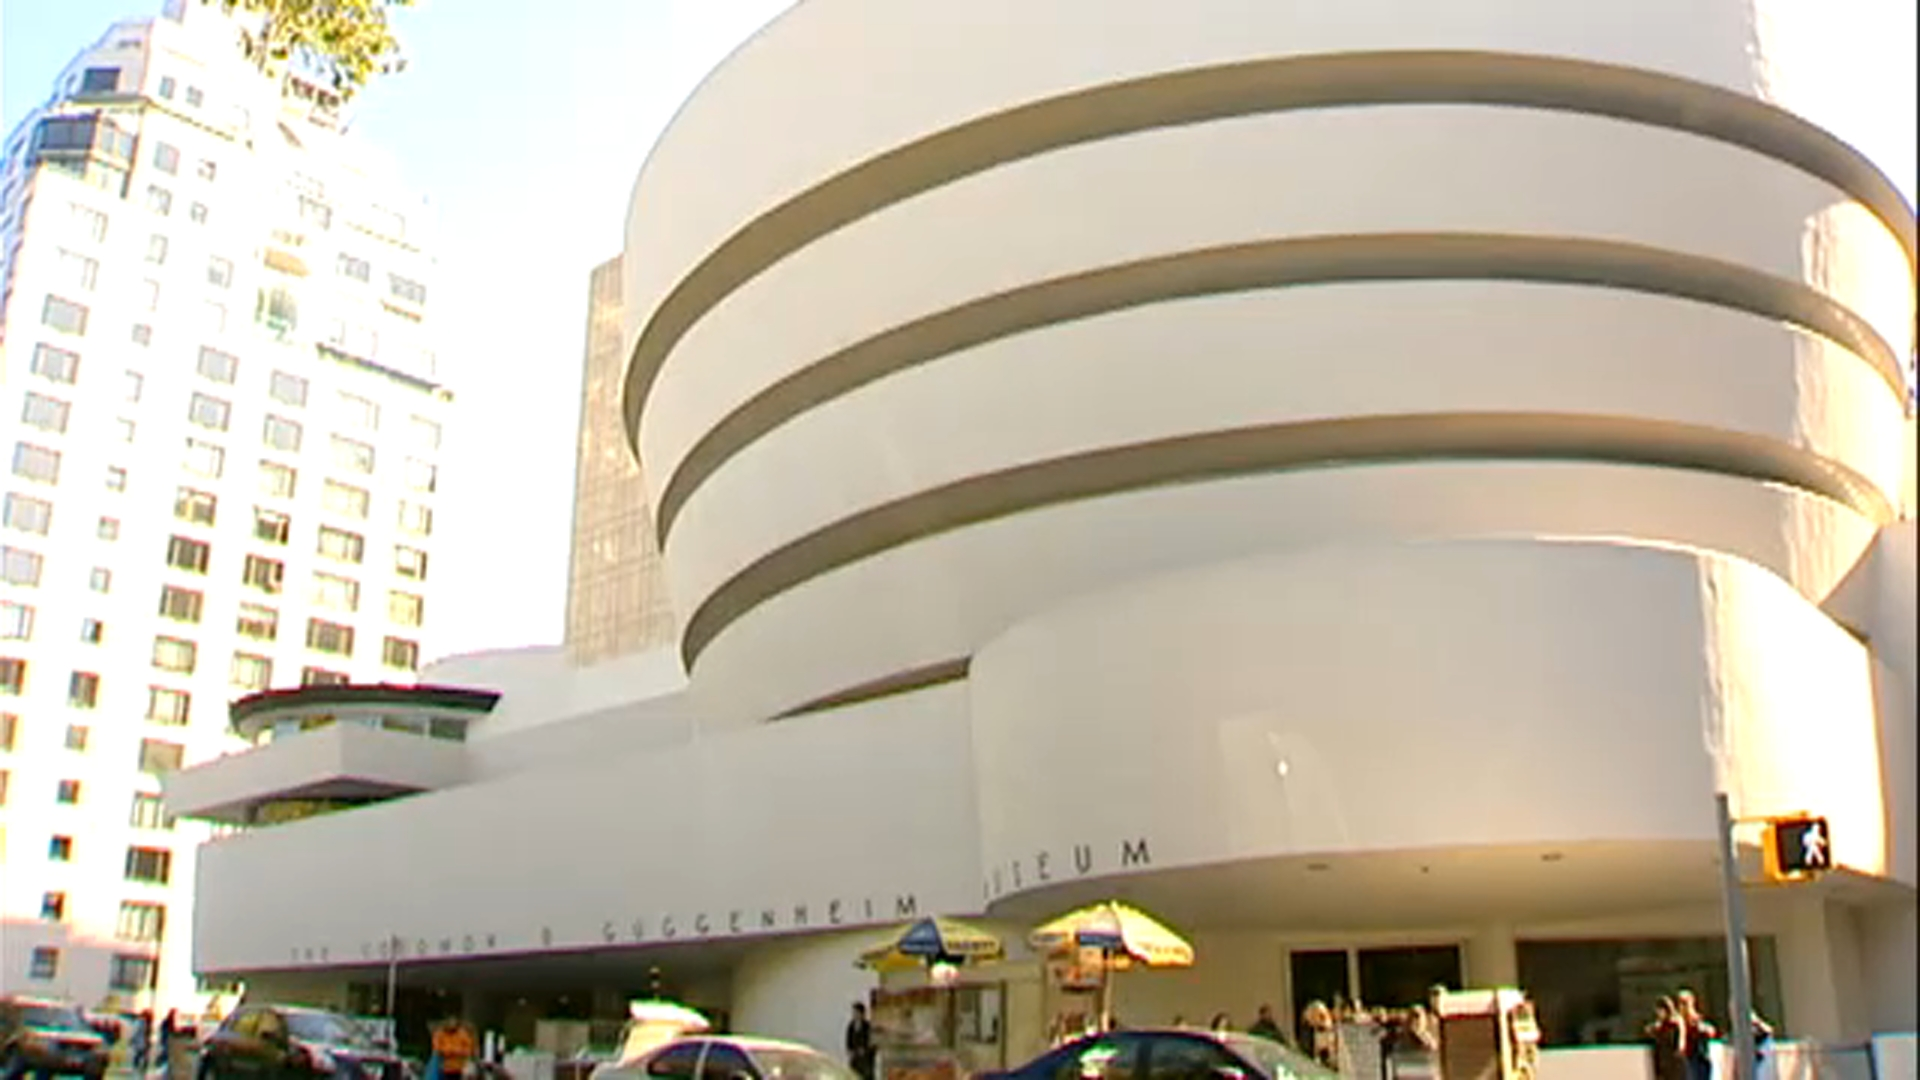 Guggenheim Cuts Staff by 11 Percent Ahead of Reopening